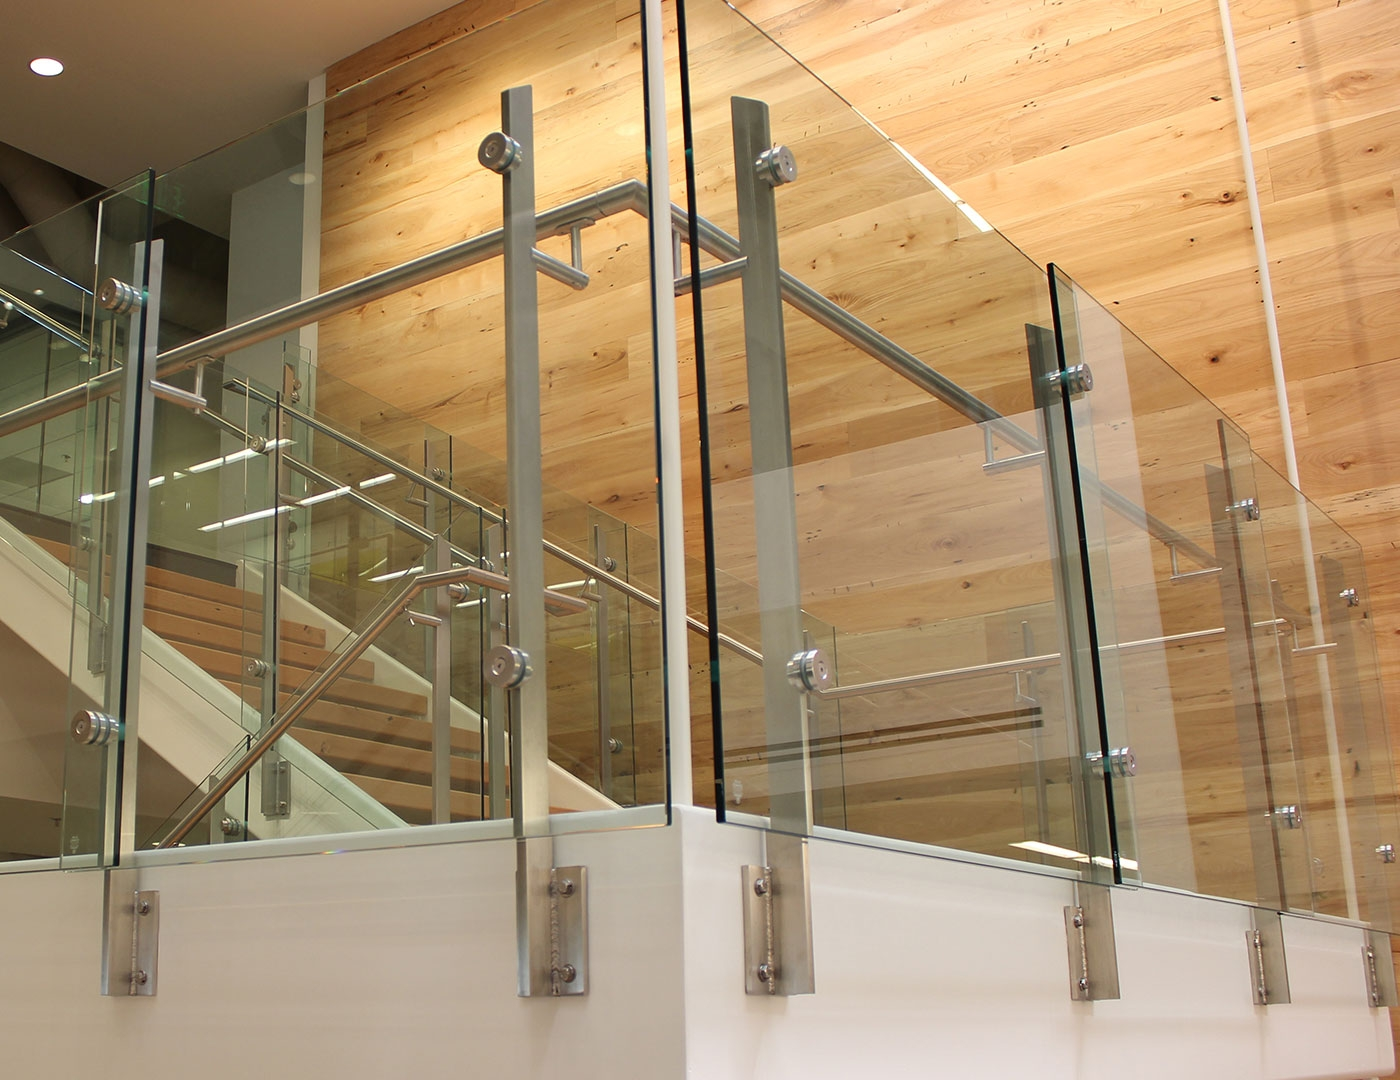 Stainless Steel With Glass Railing Price Modern Trex | Glass Railing For Stairs Price | Curved Glass Balustrade | China | Spiral Staircase | Frameless Glass | Cable Railing